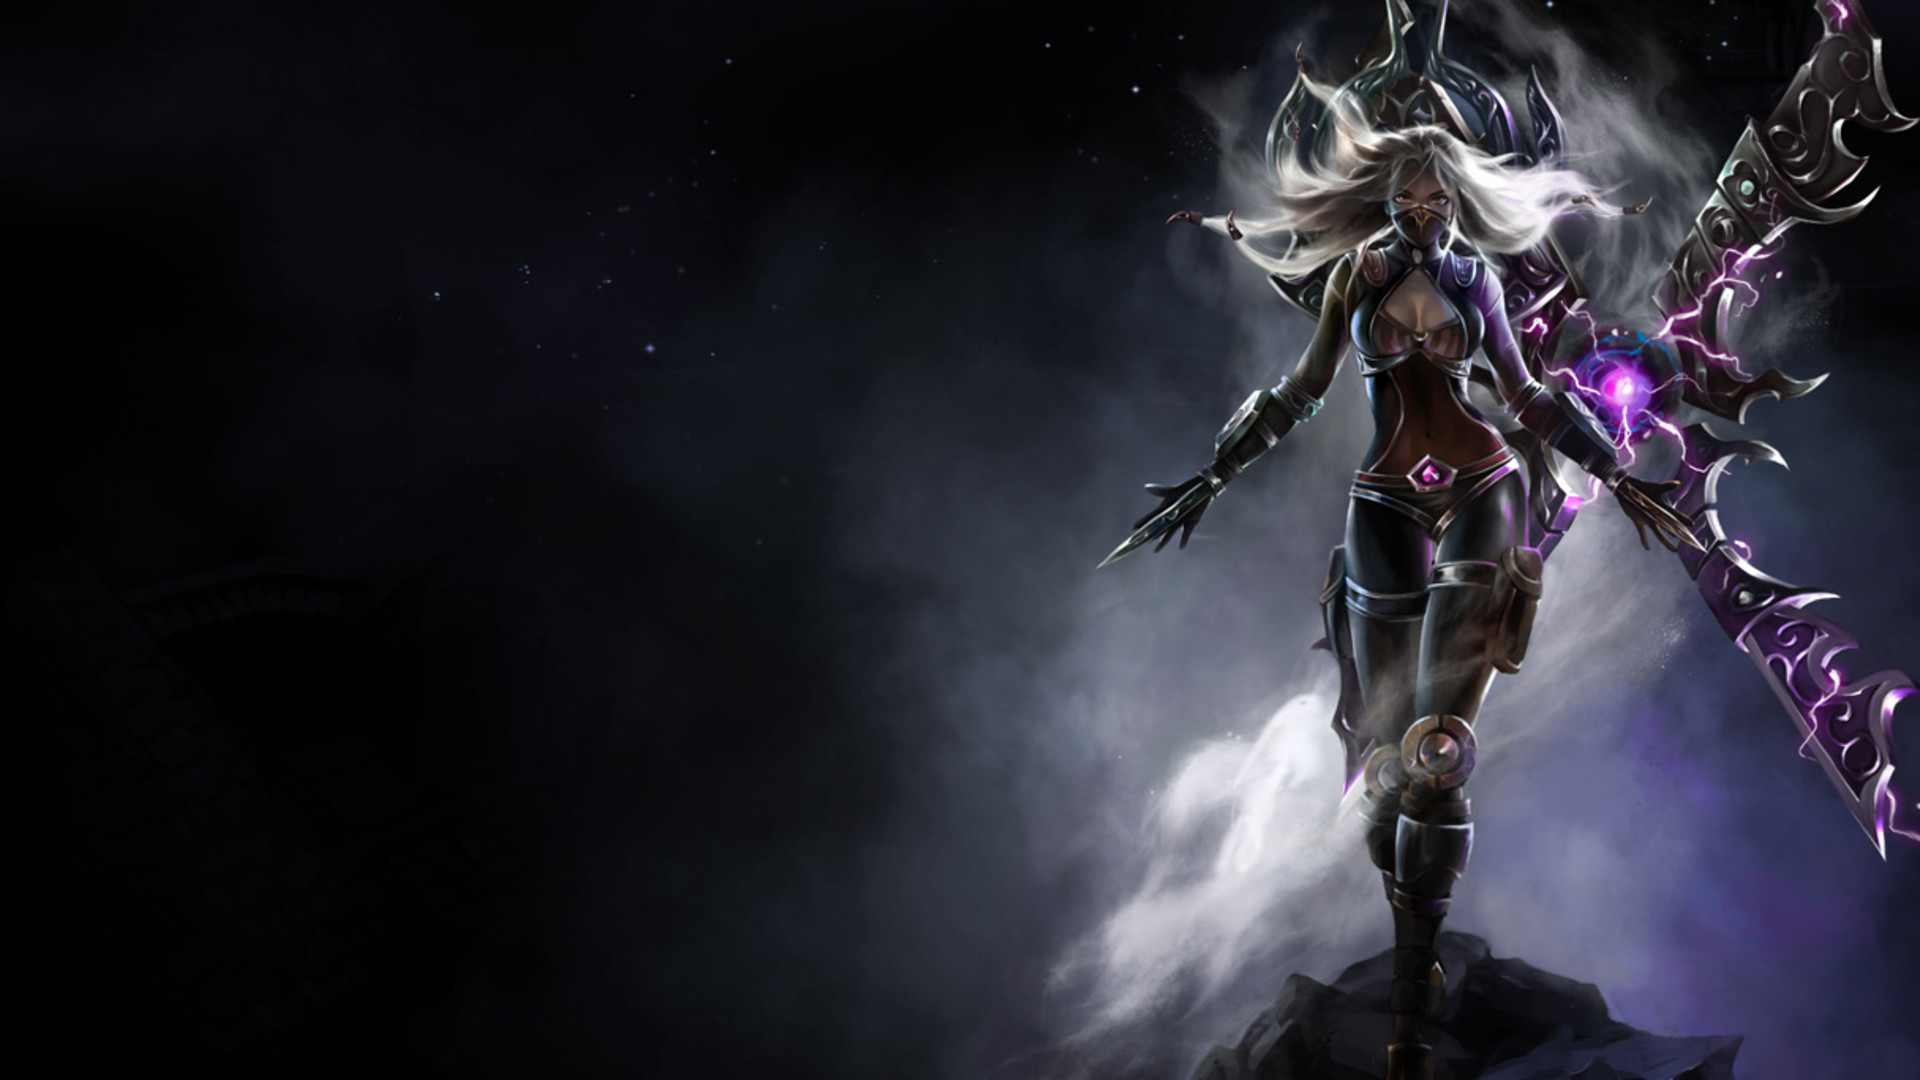 1920x1080 Dark Purple fantasy female warrior wallpaper from Warriors wallpapers